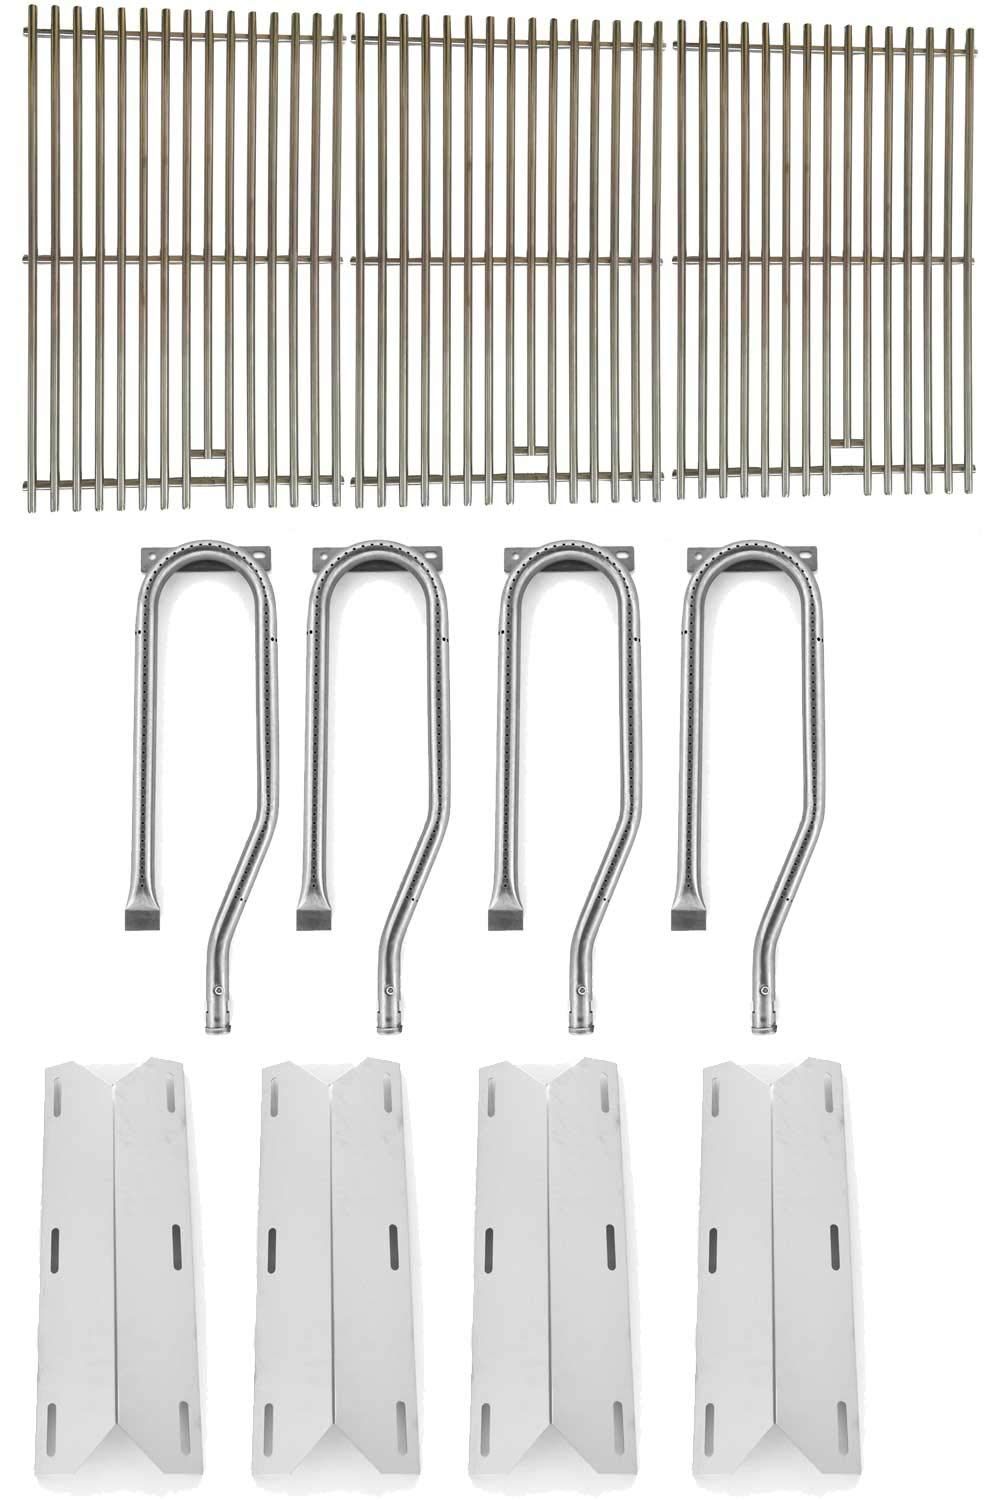 Jenn-Air 720-0337, 720-0586A, 720-0586A Gas Grill Repair Kit Includes 4 Stainless Heat Plates and 4 Stainless Steel Burners and Stainless Steel Grates by Grill Parts Zone (Image #1)